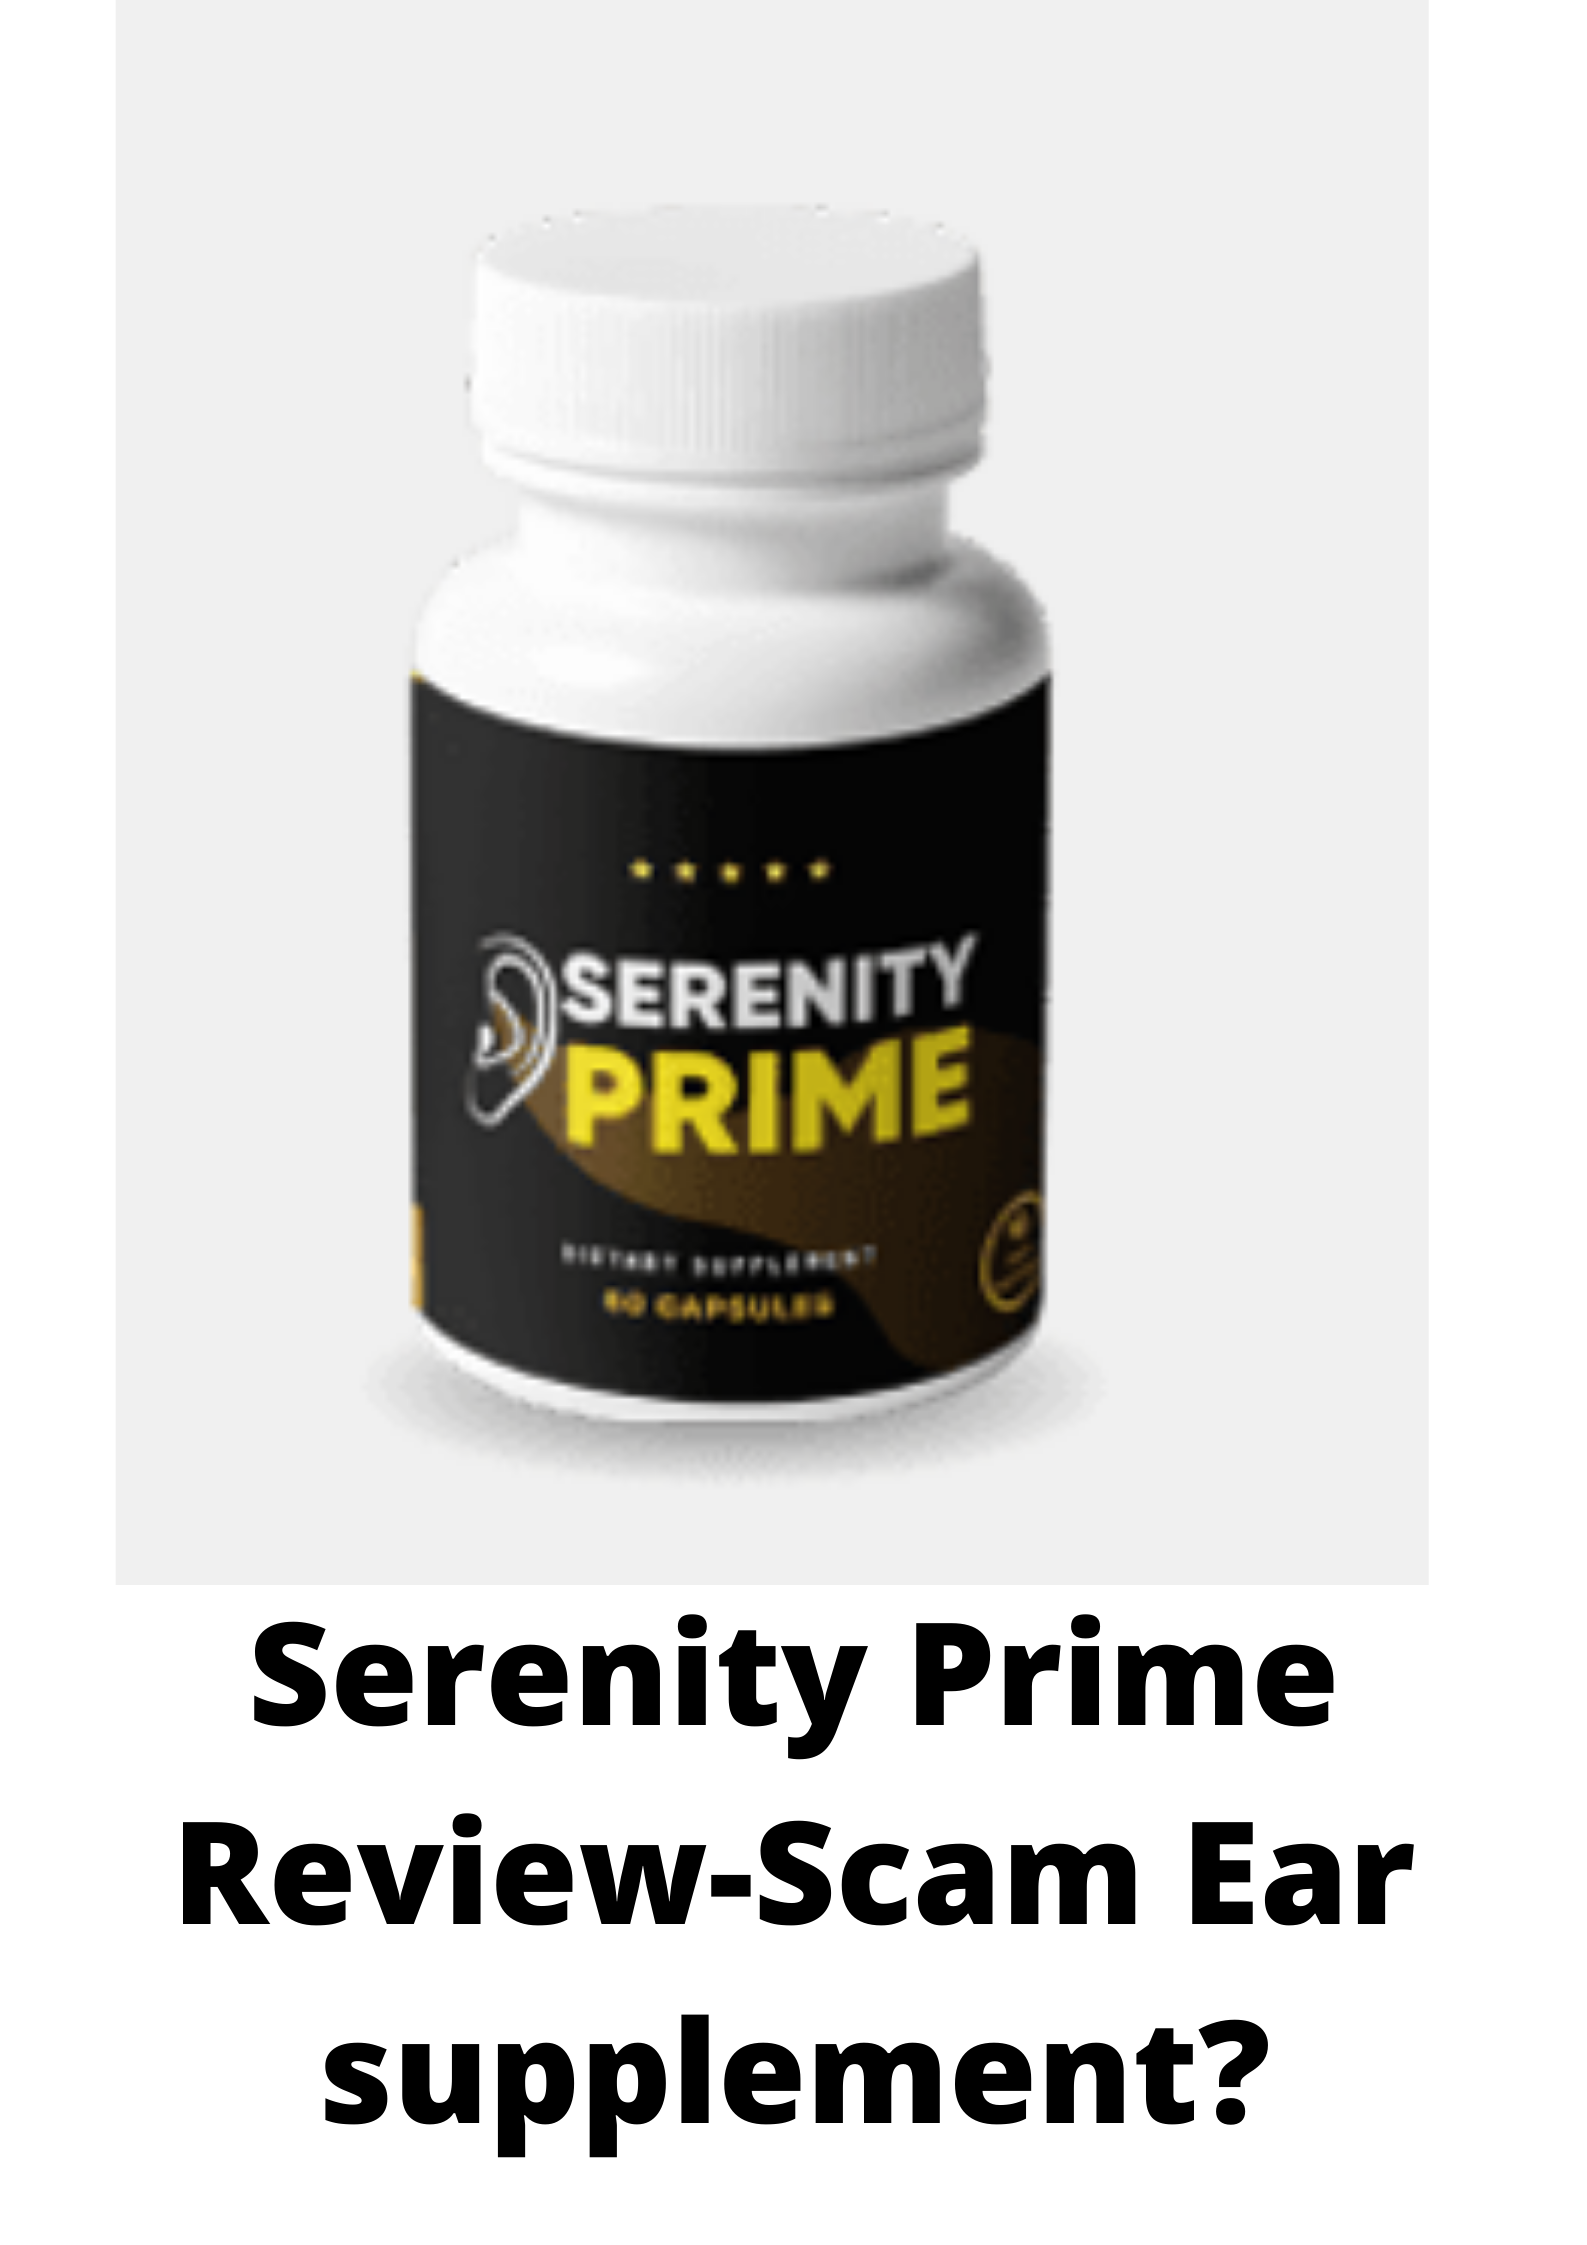 Serenity Prime Review-Is this Ear supplement worth it?